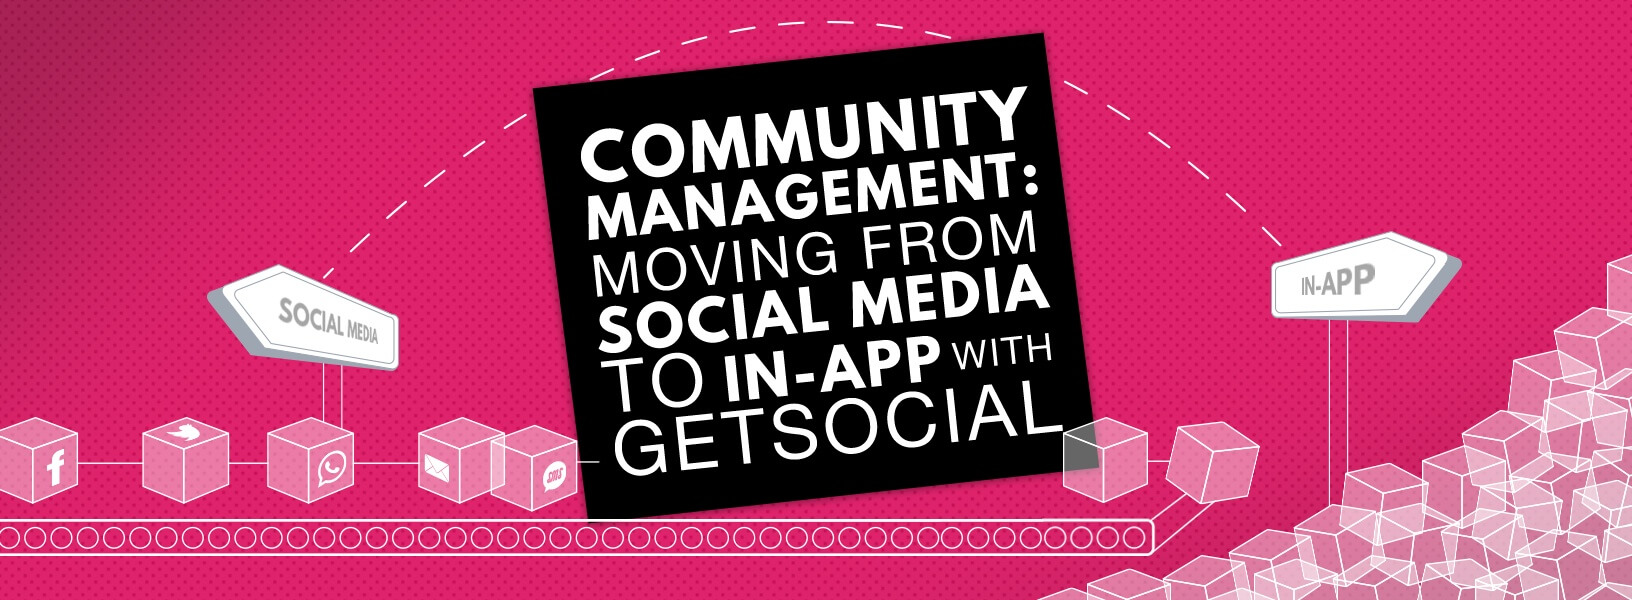 communityManagementToInApp